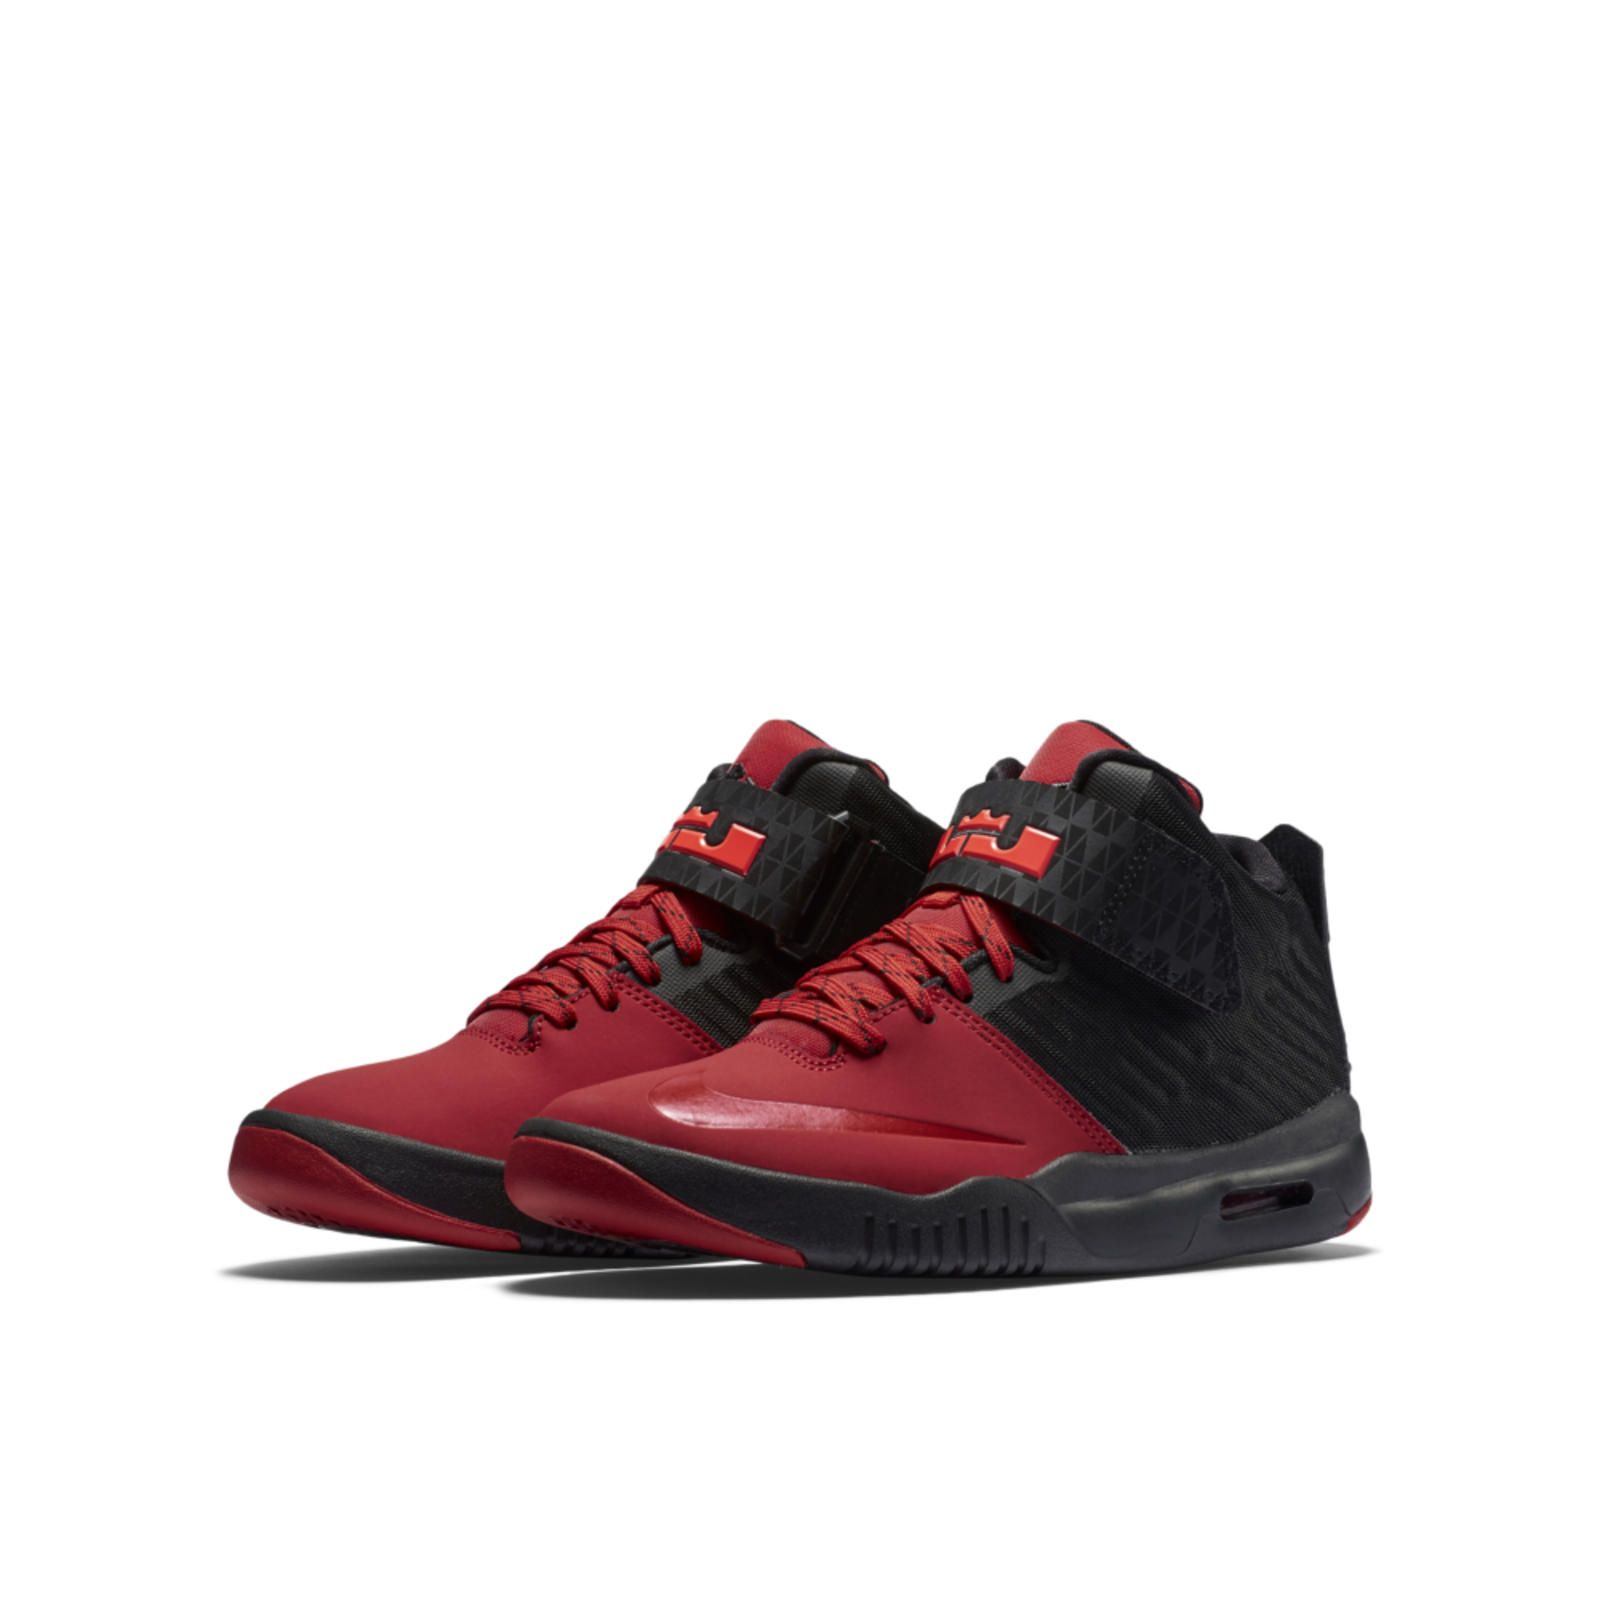 Buy Brand New Nike Air LeBron Akronite Black Bright Crimson University Red  Best from Reliable Brand New Nike Air LeBron Akronite Black Bright Crimson  ... 9e18c0663a20